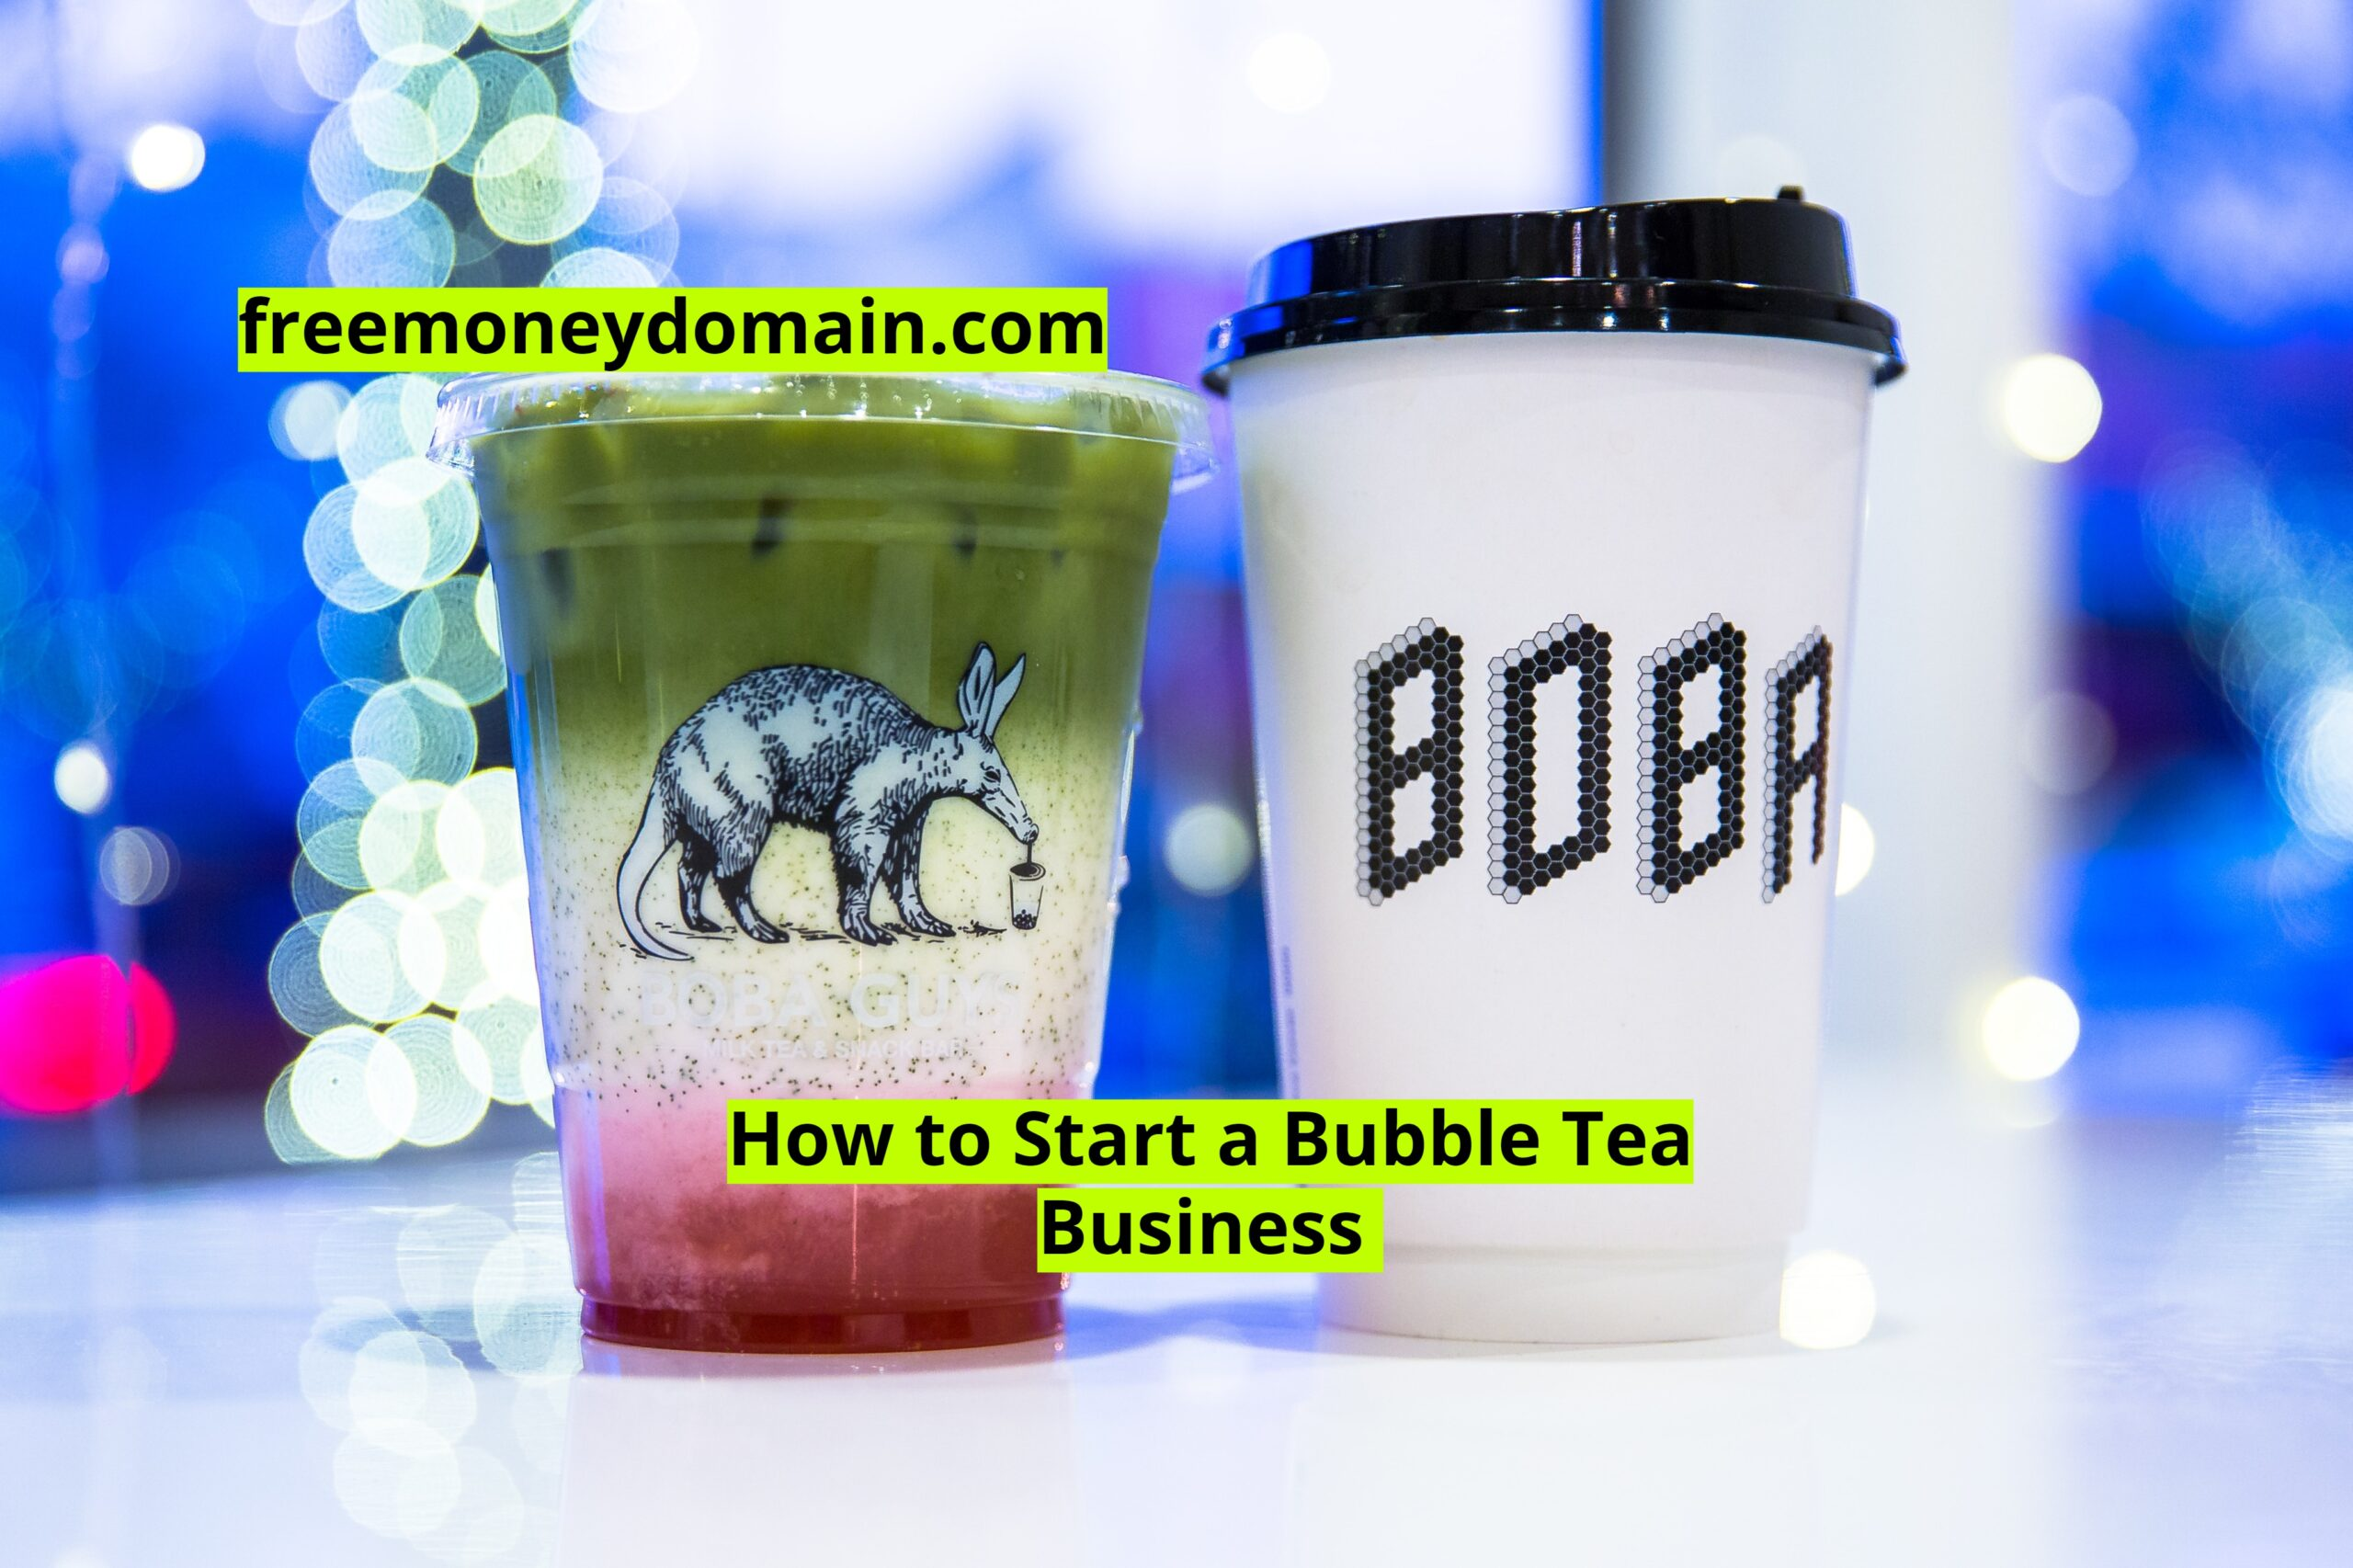 How to Start a Bubble Tea Business in 2021